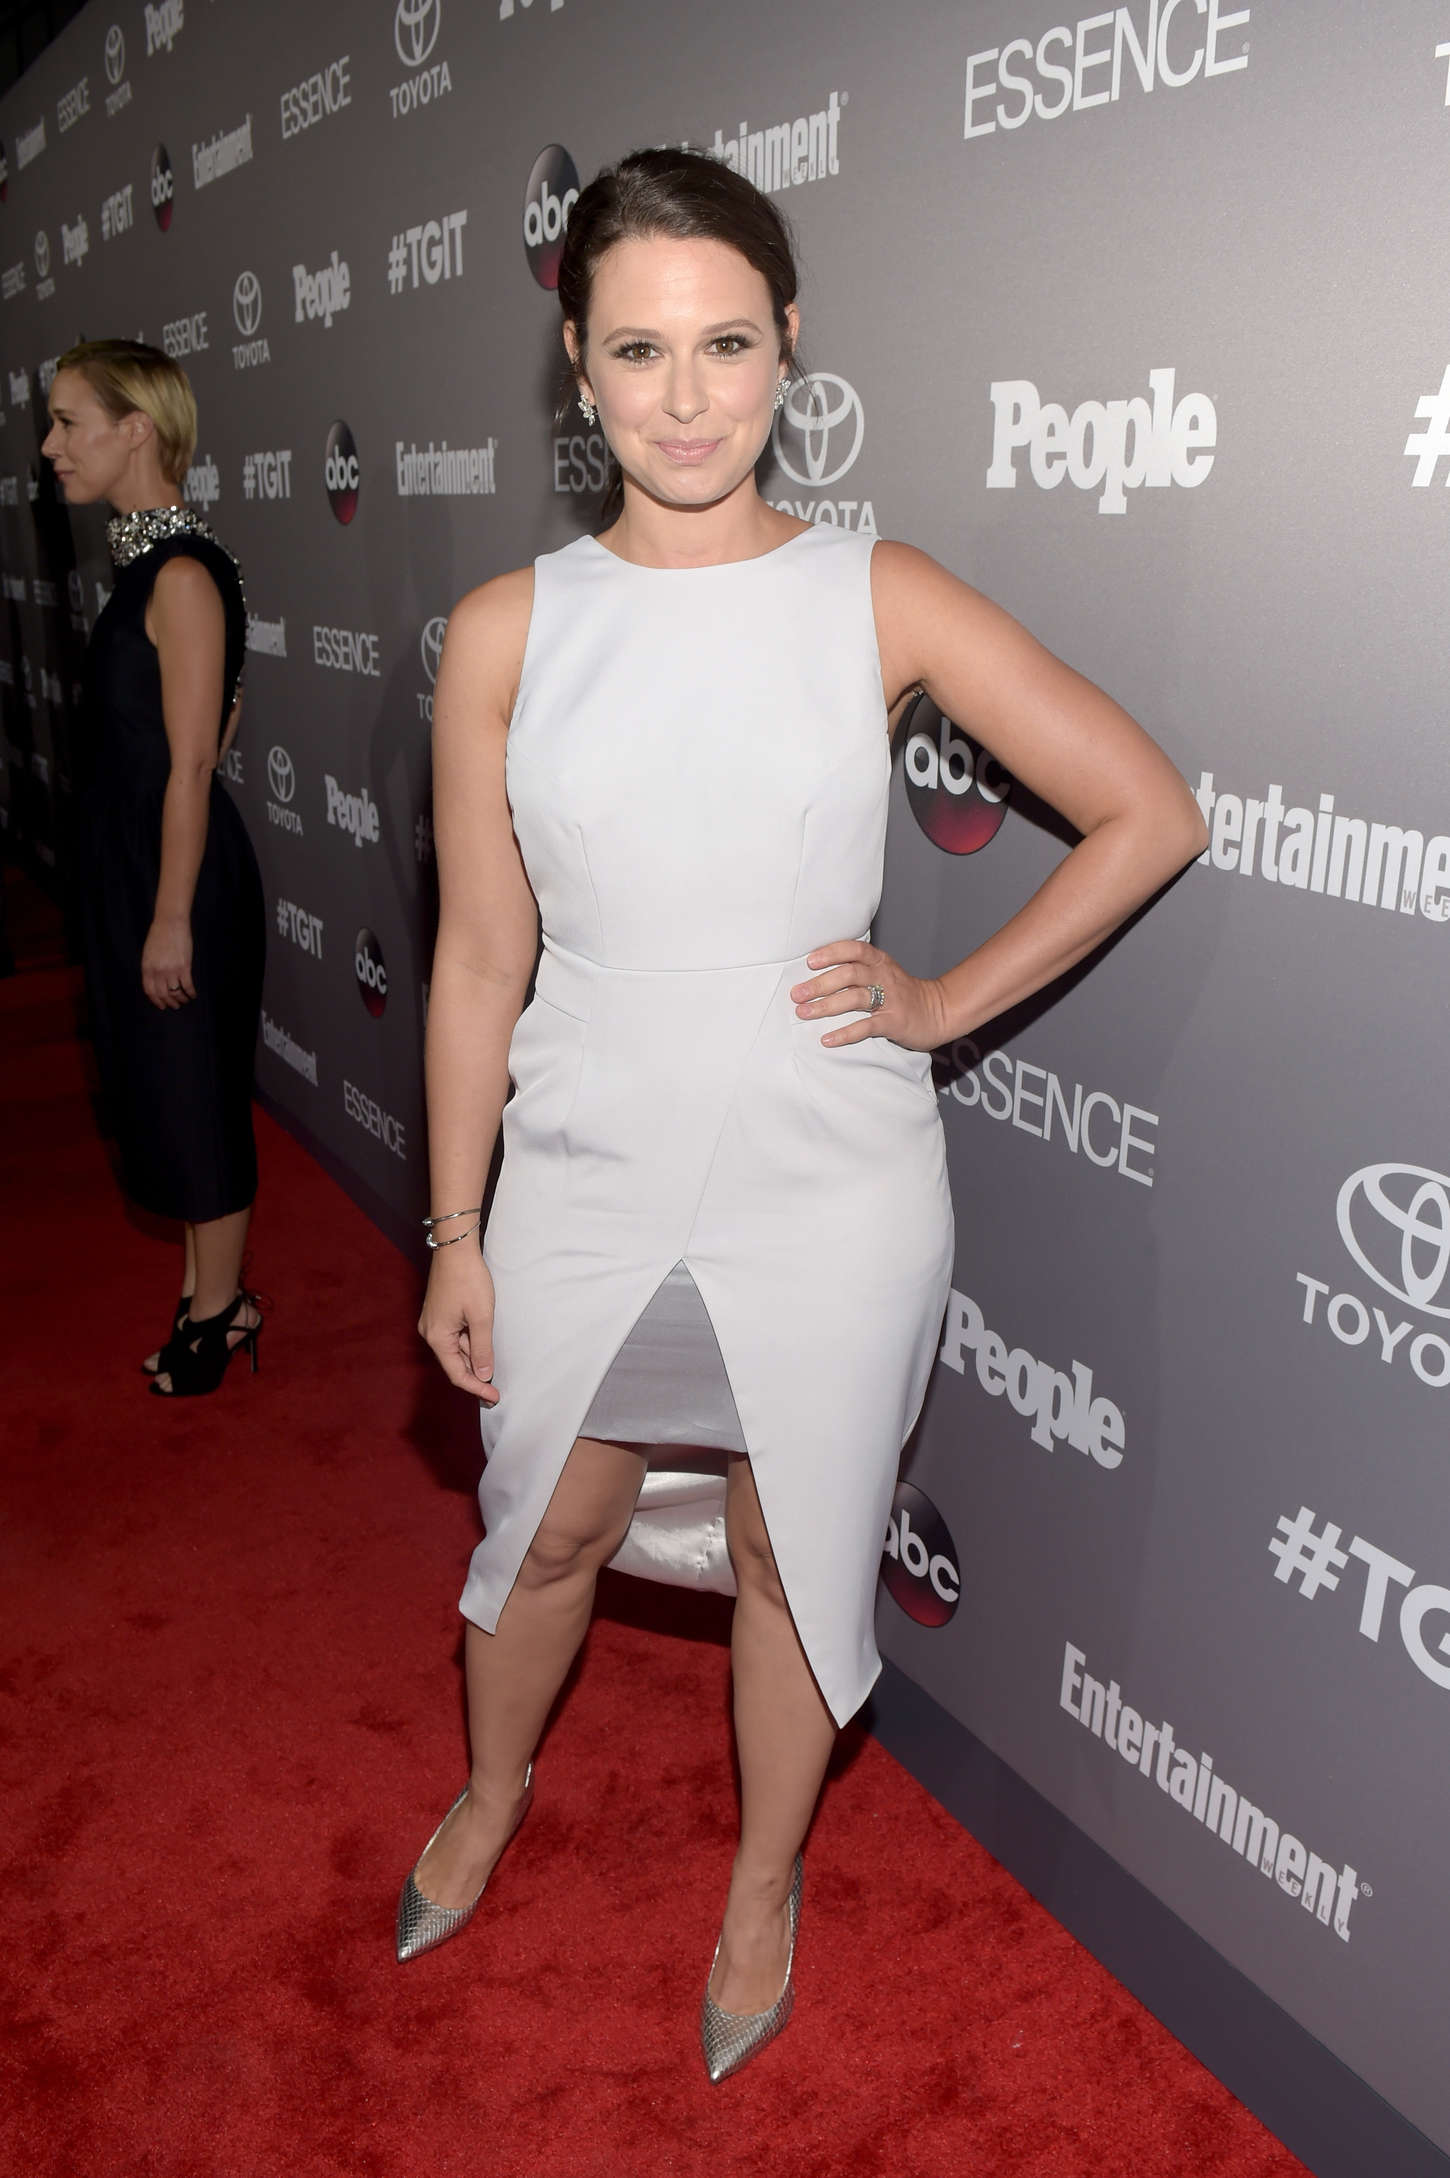 Katie Lowes ABCs TGIT line-up Celebration in West Hollywood